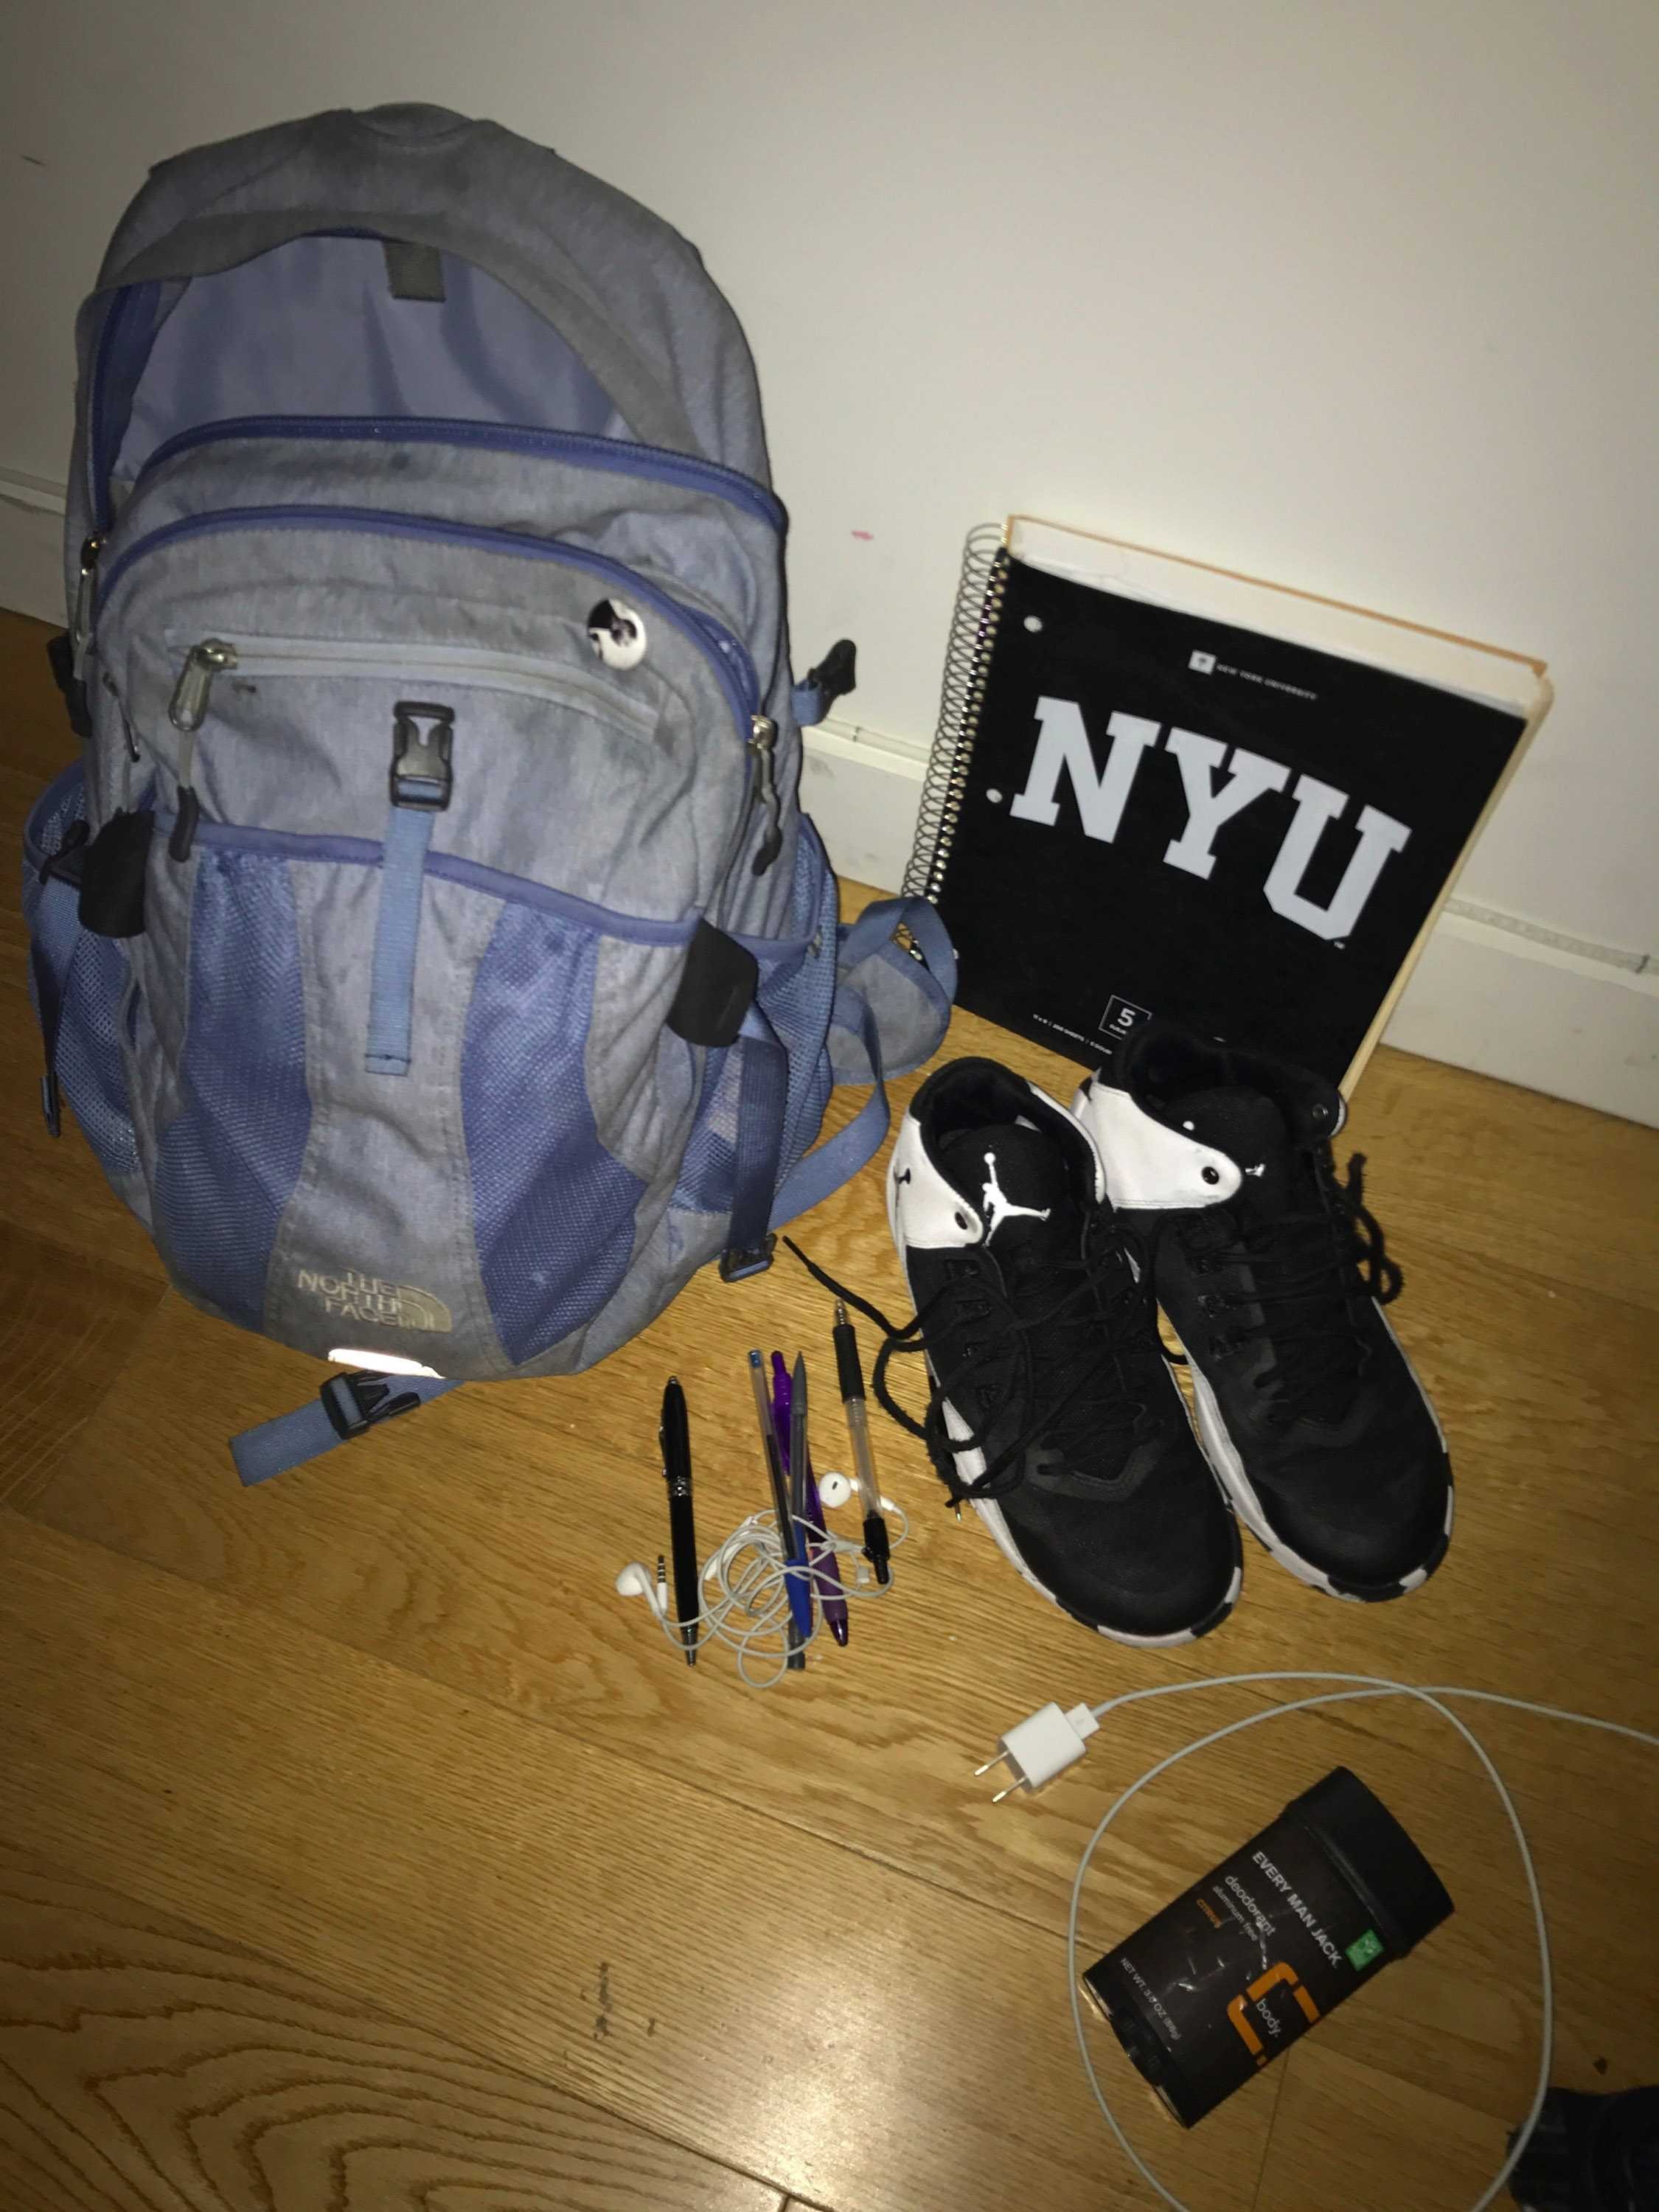 For a student athlete, the contents of their bag determines their daily success.